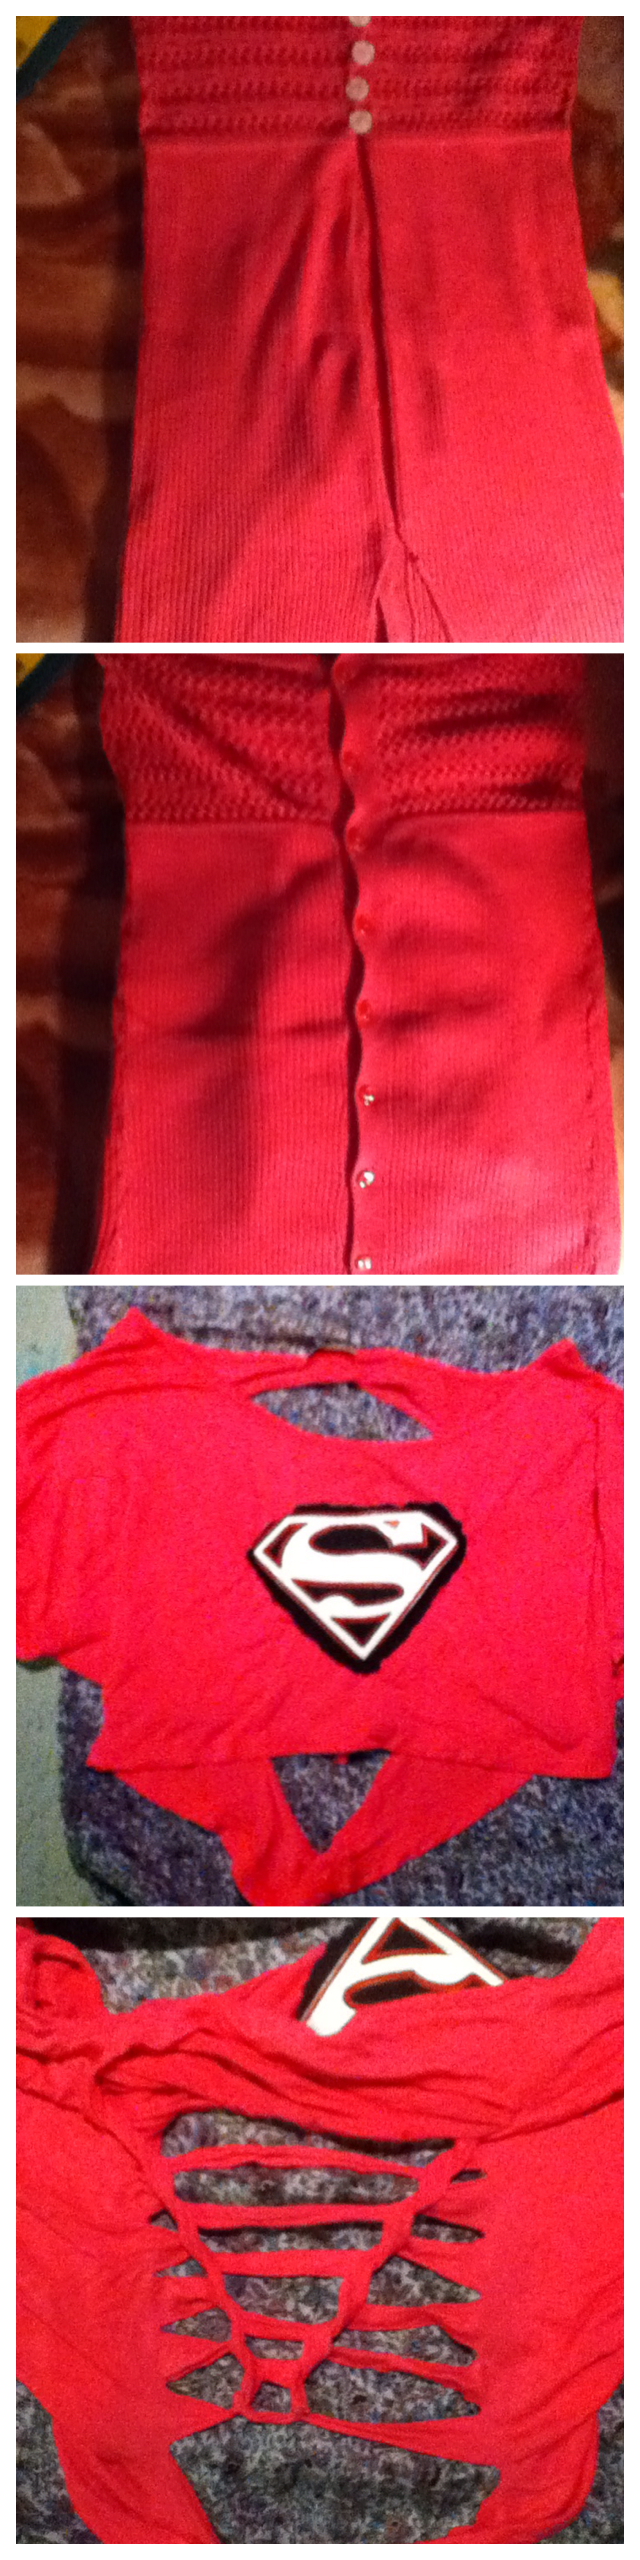 Transformed sweater into halter top, striped back superman crop top! Added superman logo recycled from little boys top!